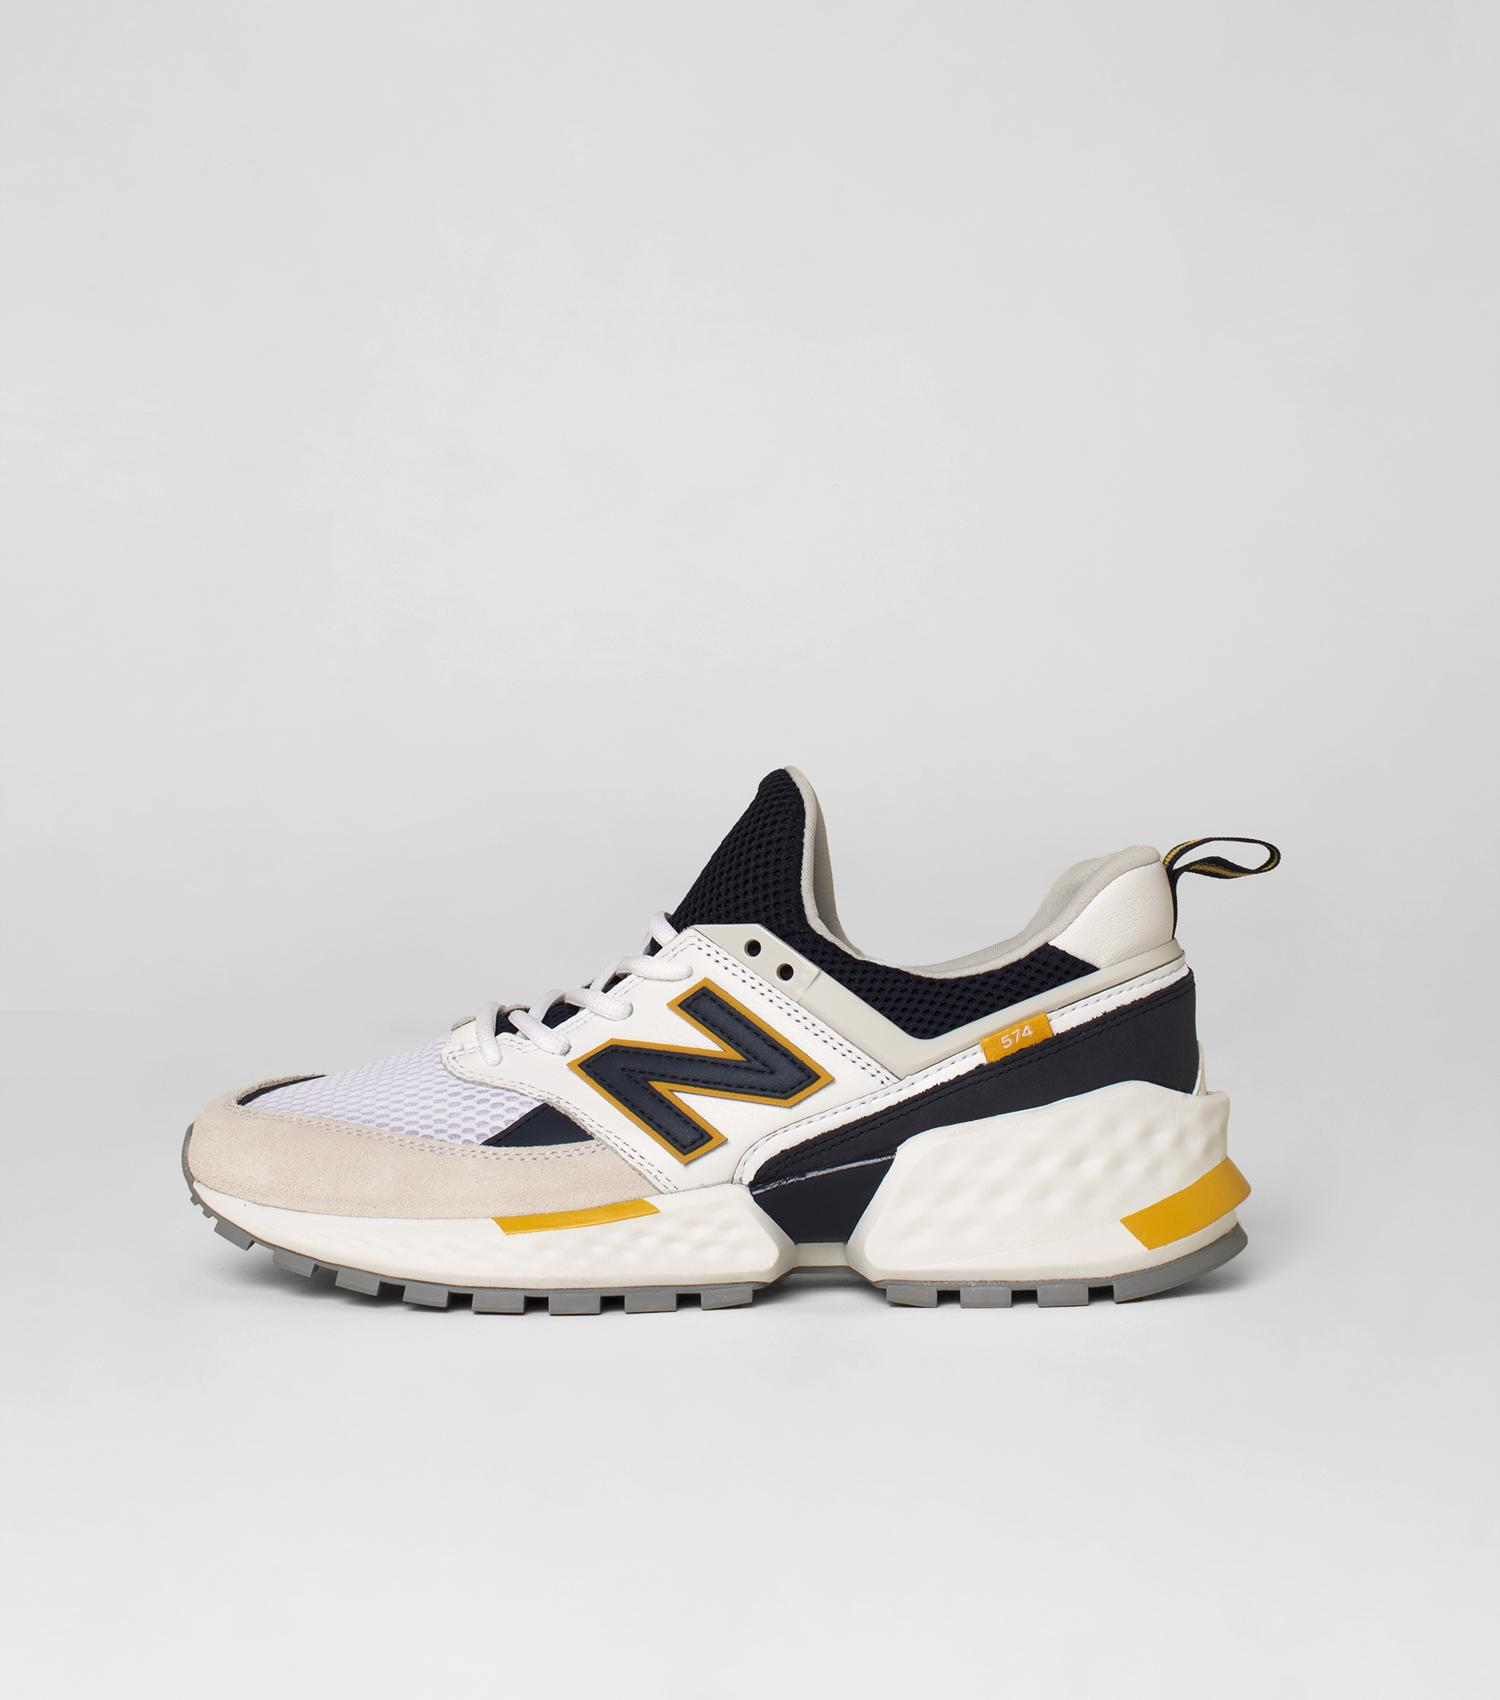 100% authentic 14764 2d853 New Balance Off White & Navy Nb 574 Sport Sneakers for Men ...